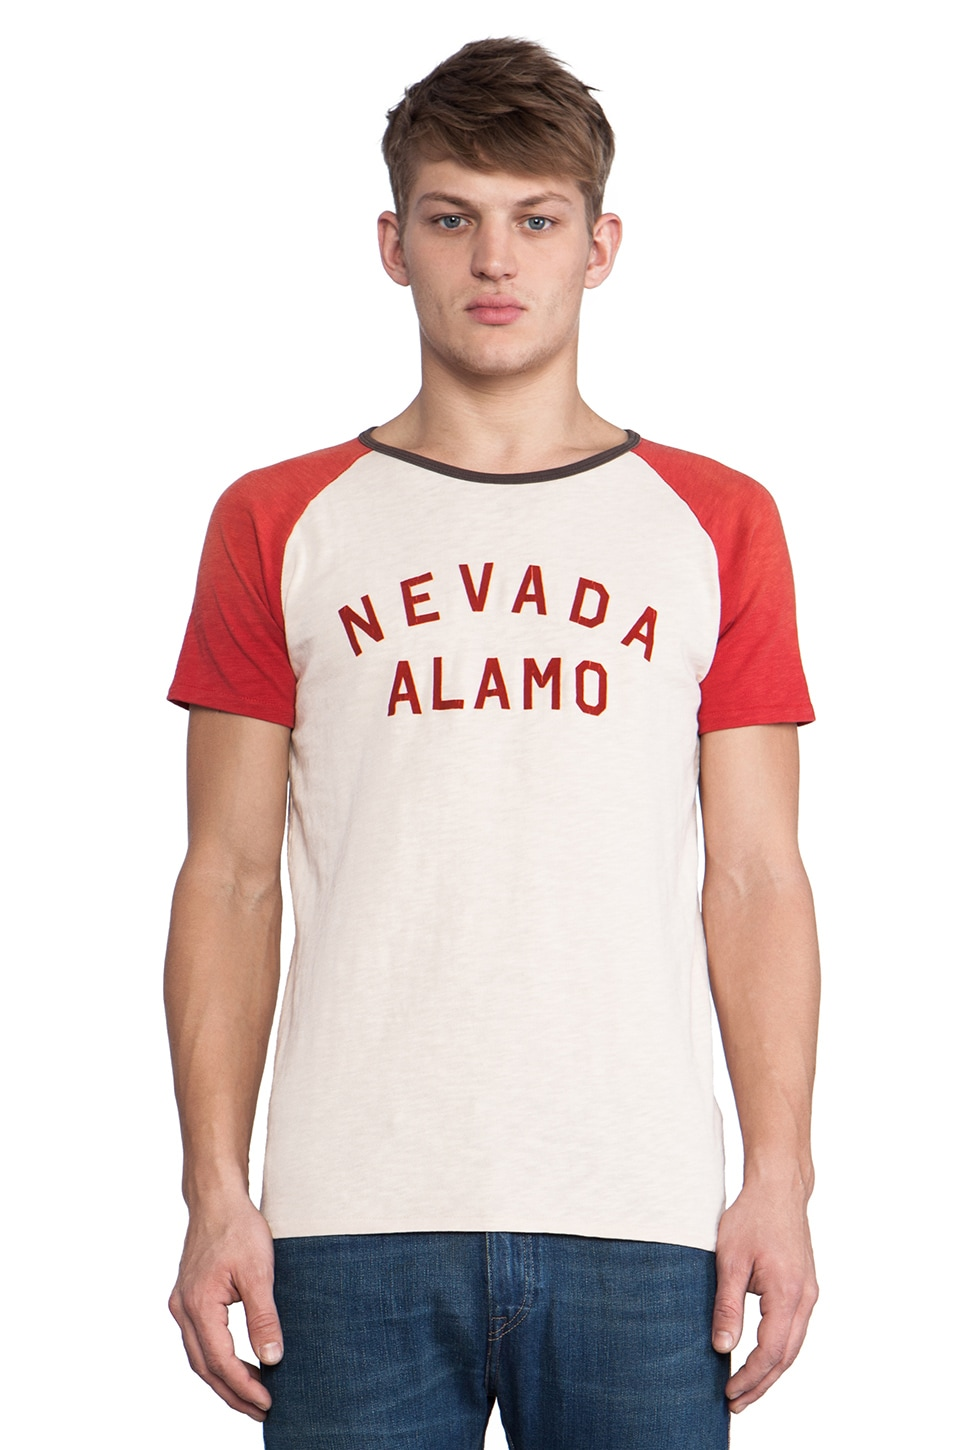 Scotch & Soda Nevada Alamo Rocker Tee in Red